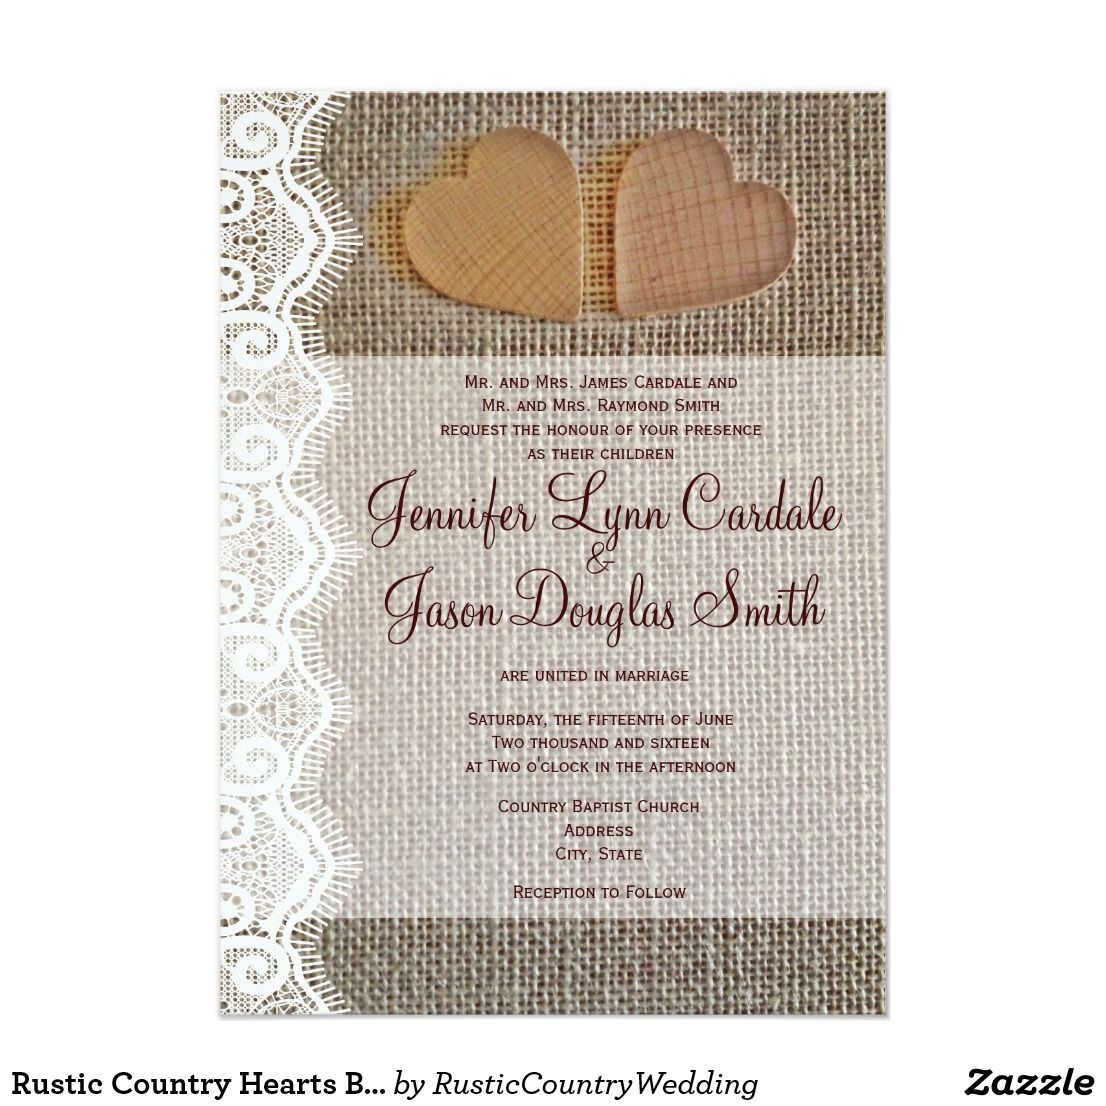 Rustic Country Hearts Burlap Lace Wedding Invites This rustic ...